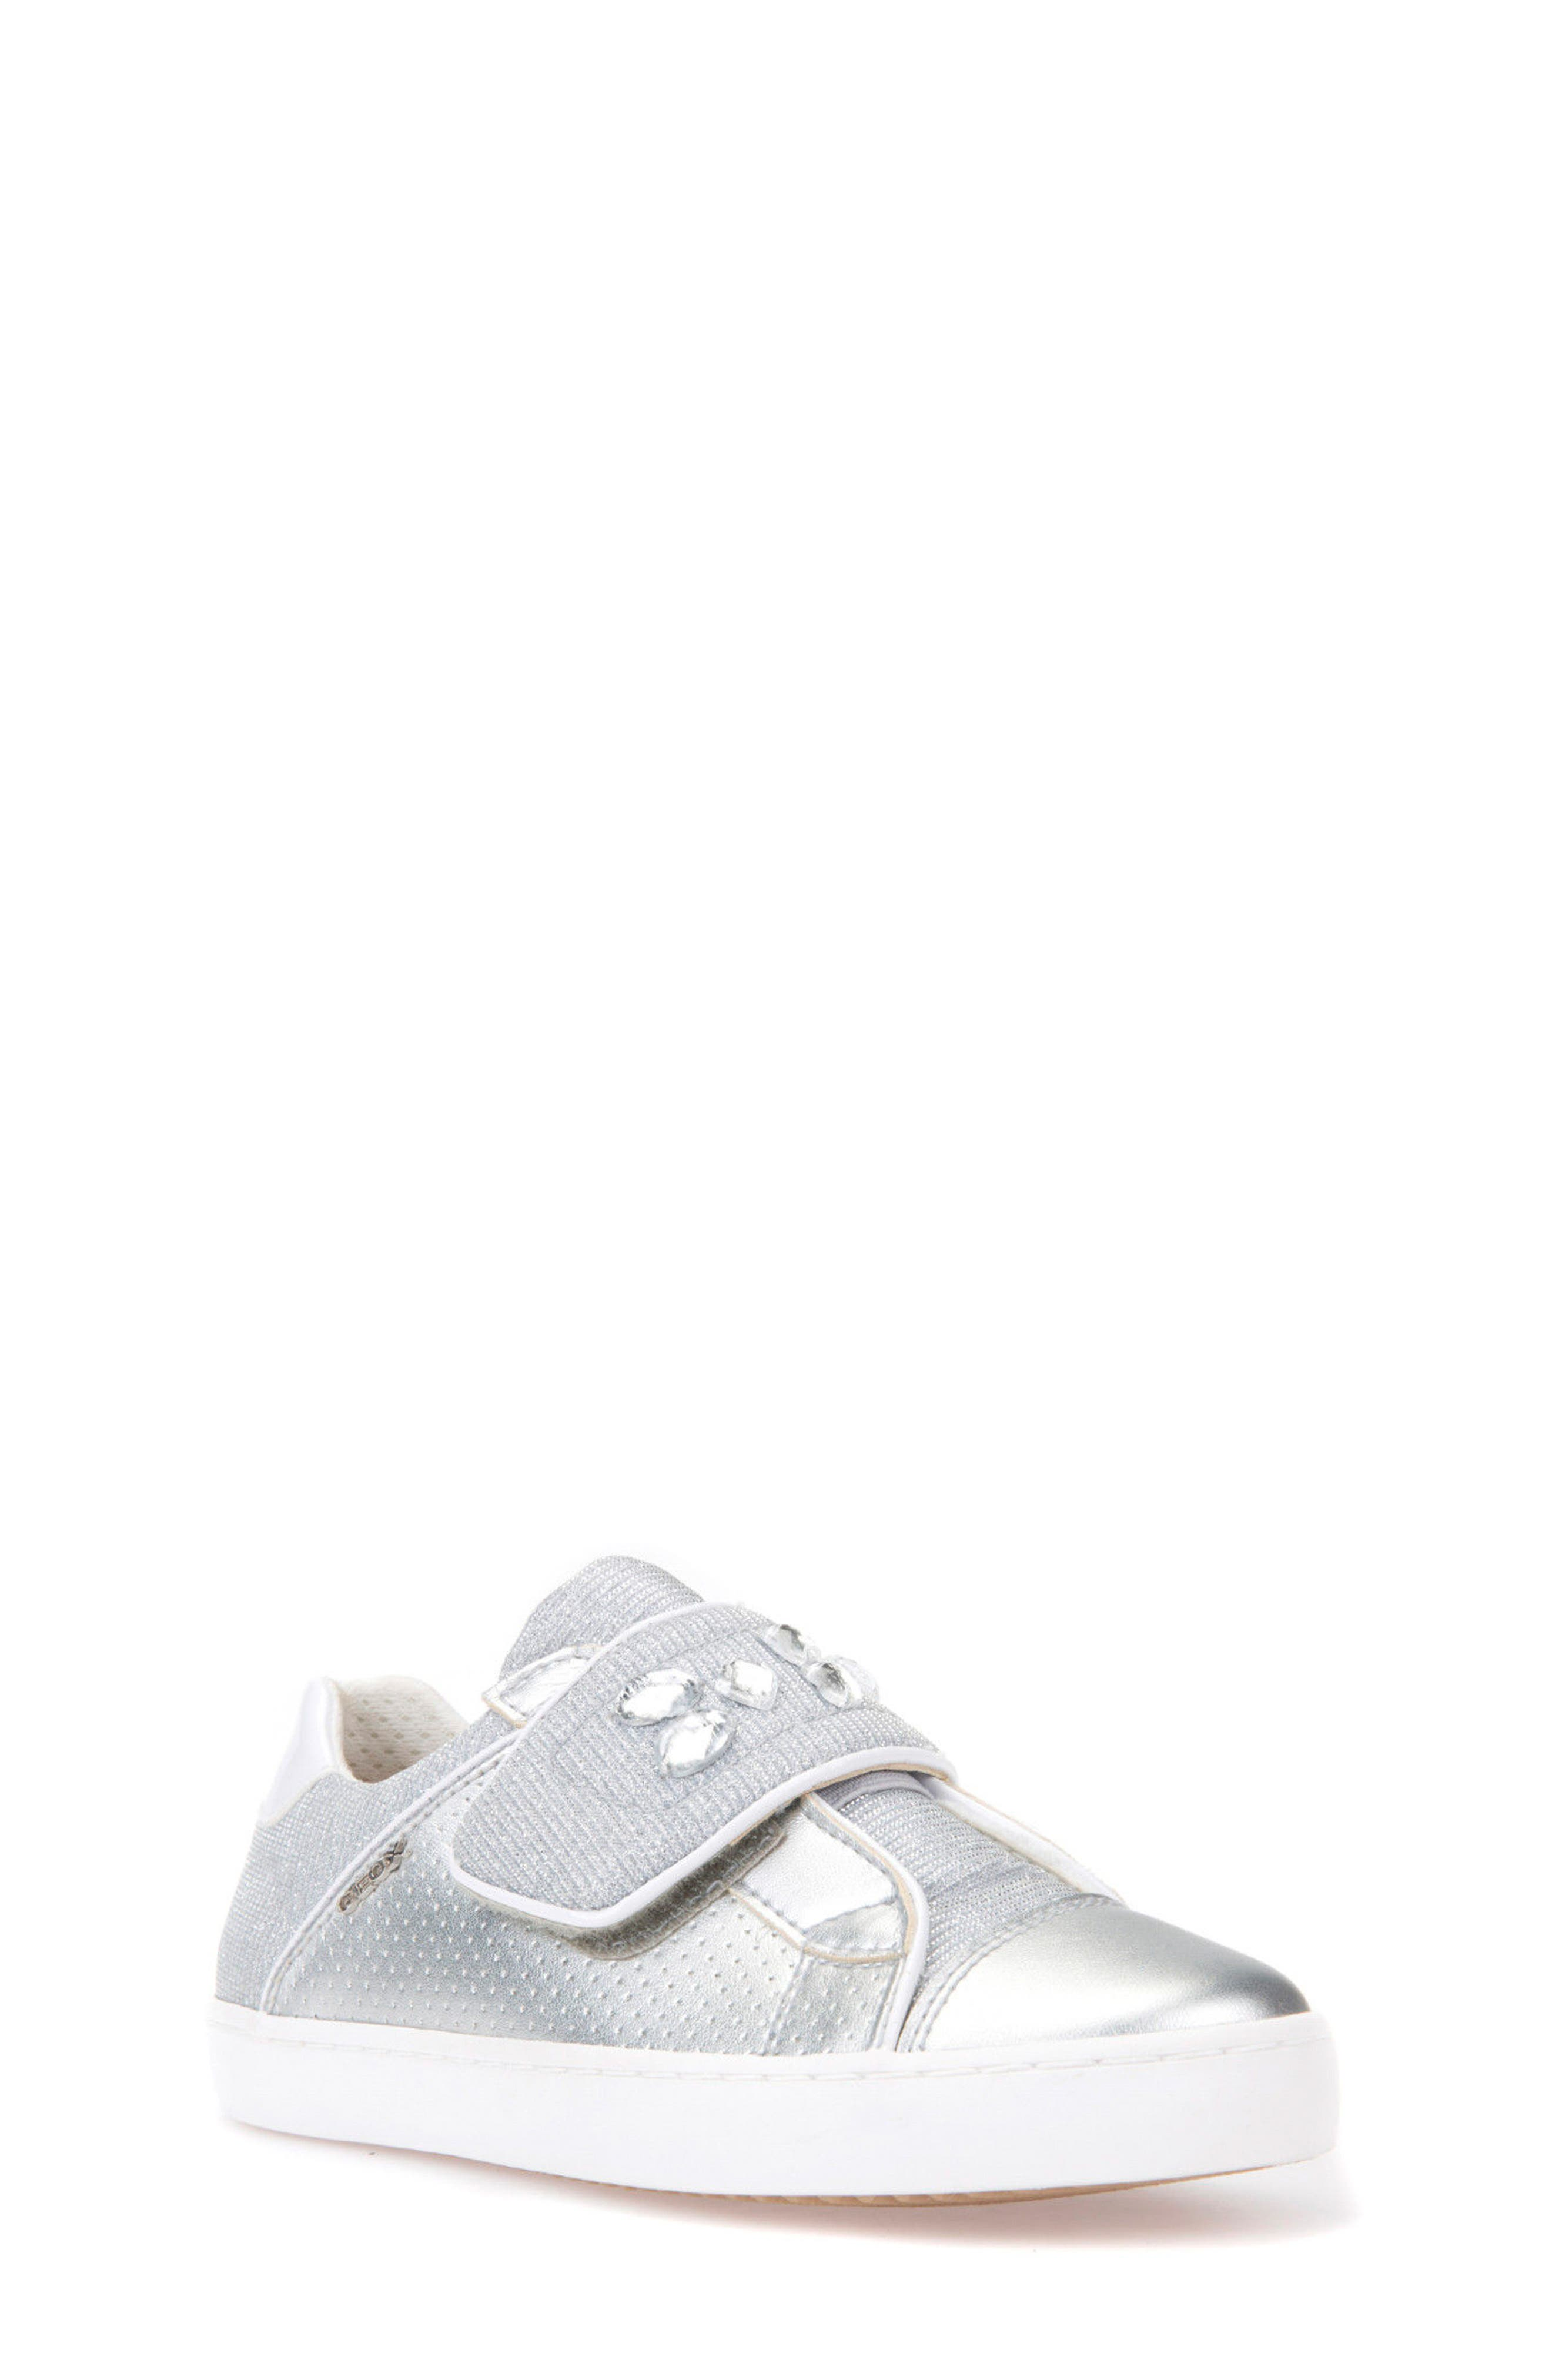 Kilwi Metallic Embellished Sneaker,                             Main thumbnail 1, color,                             Silver